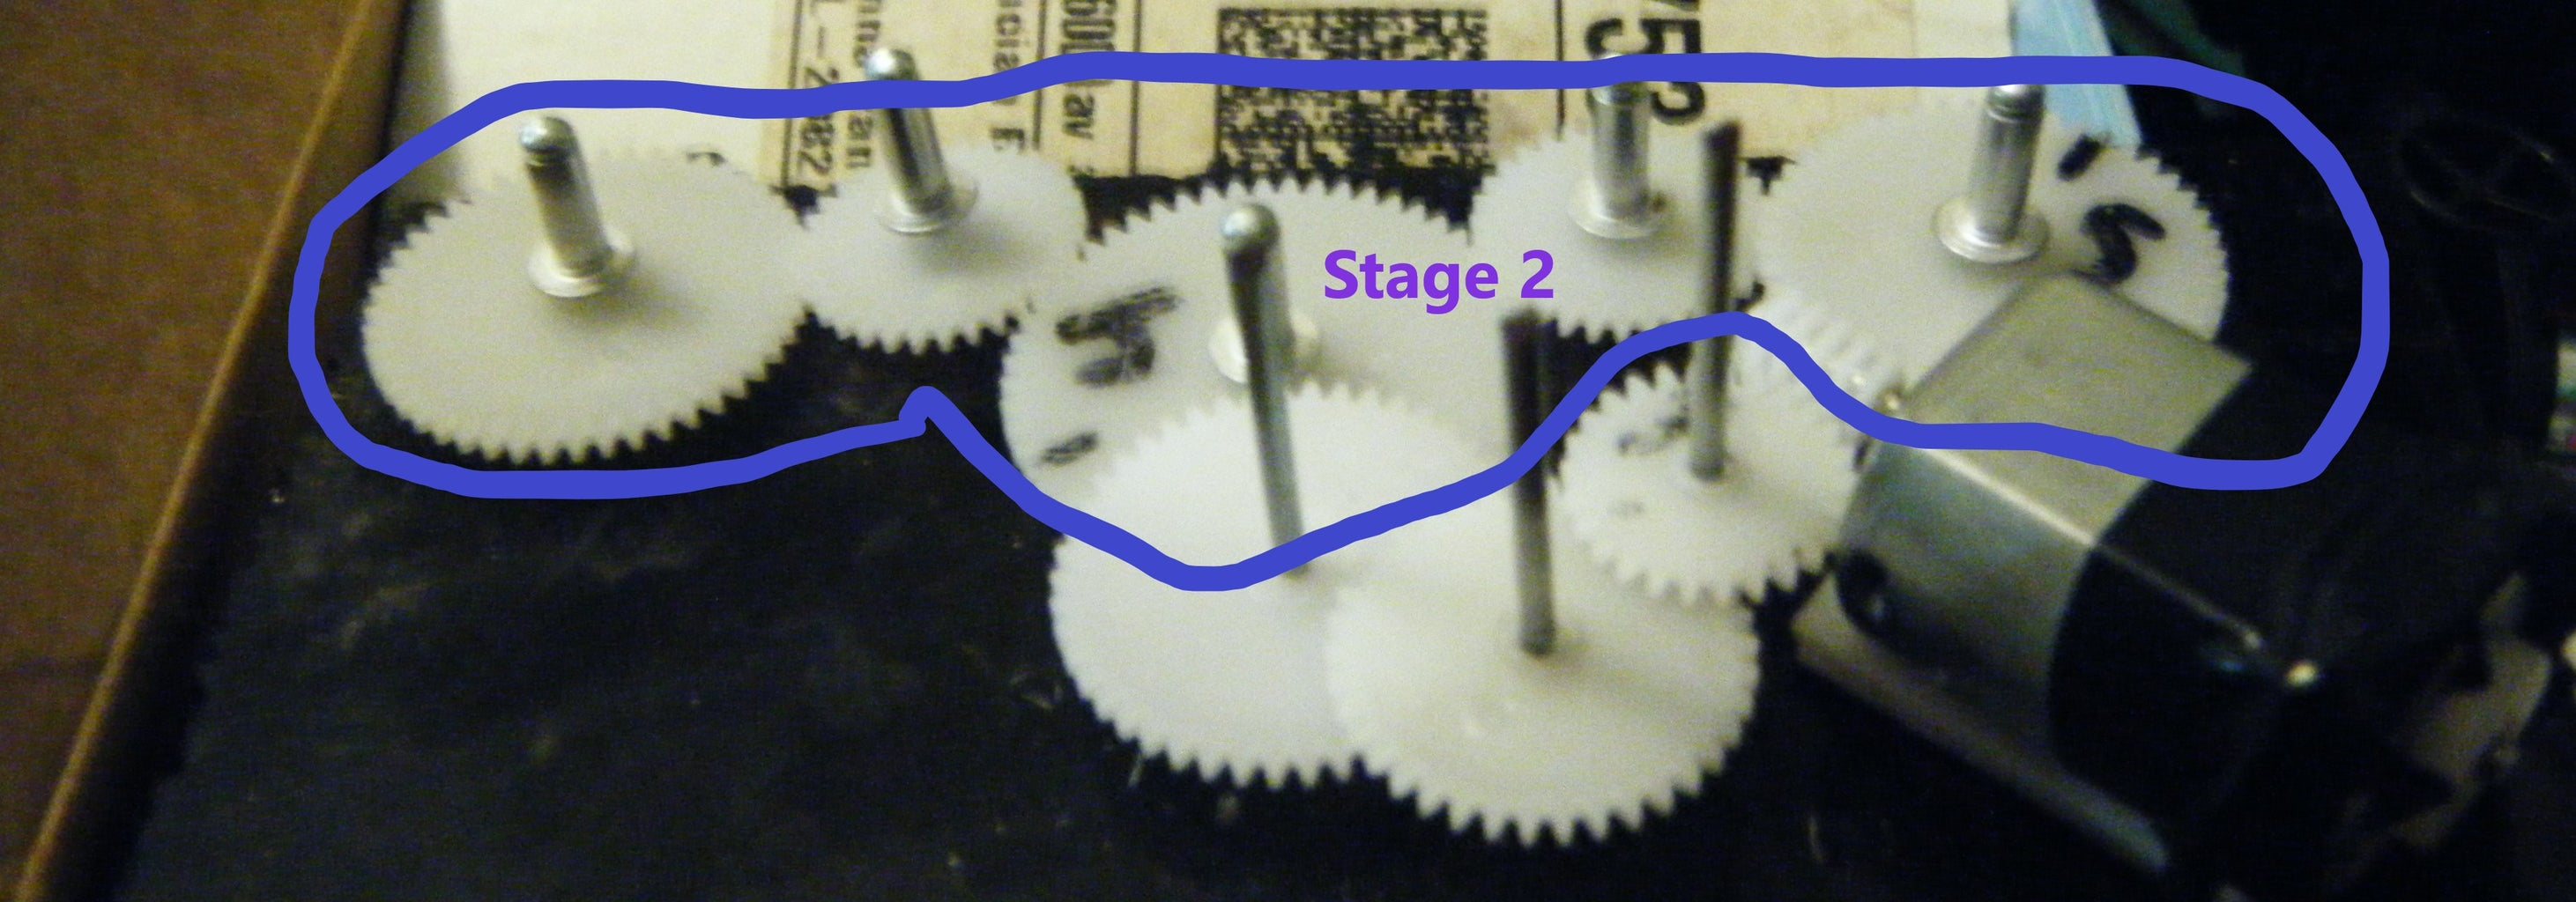 The Gearbox - Production Model